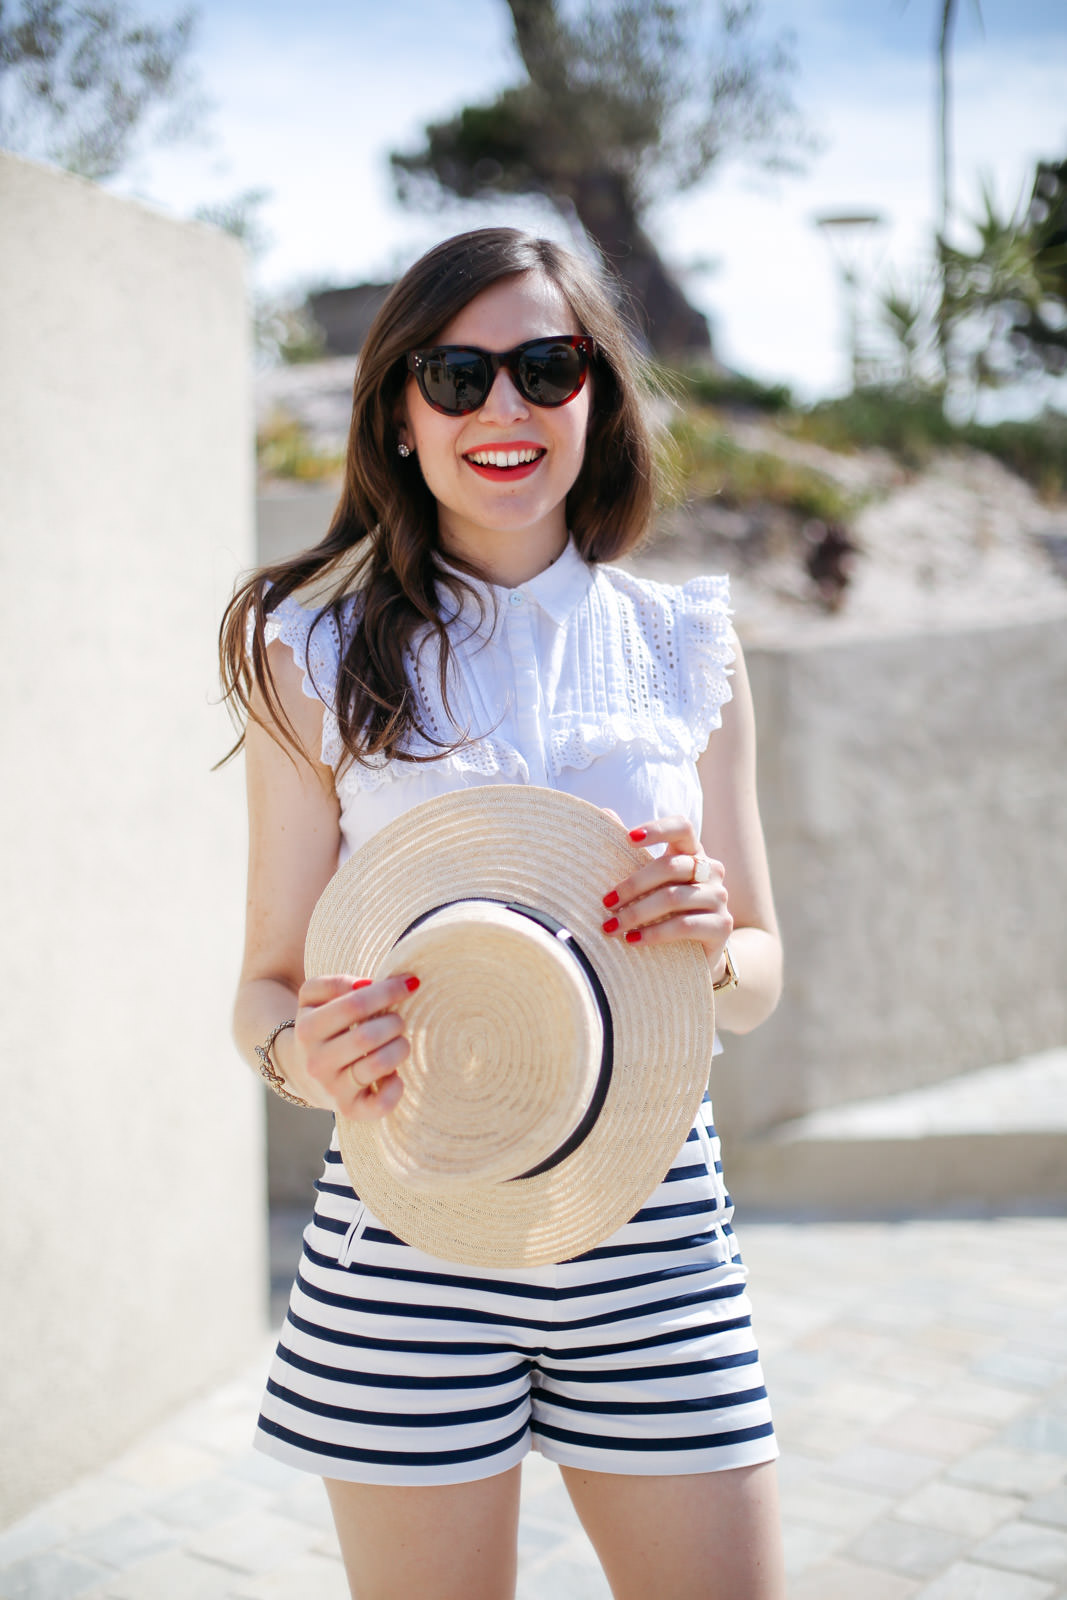 Blog-Mode-And-The-City-Looks-Les-Pieds-Dans-Le-Sable-A-Calvi-5